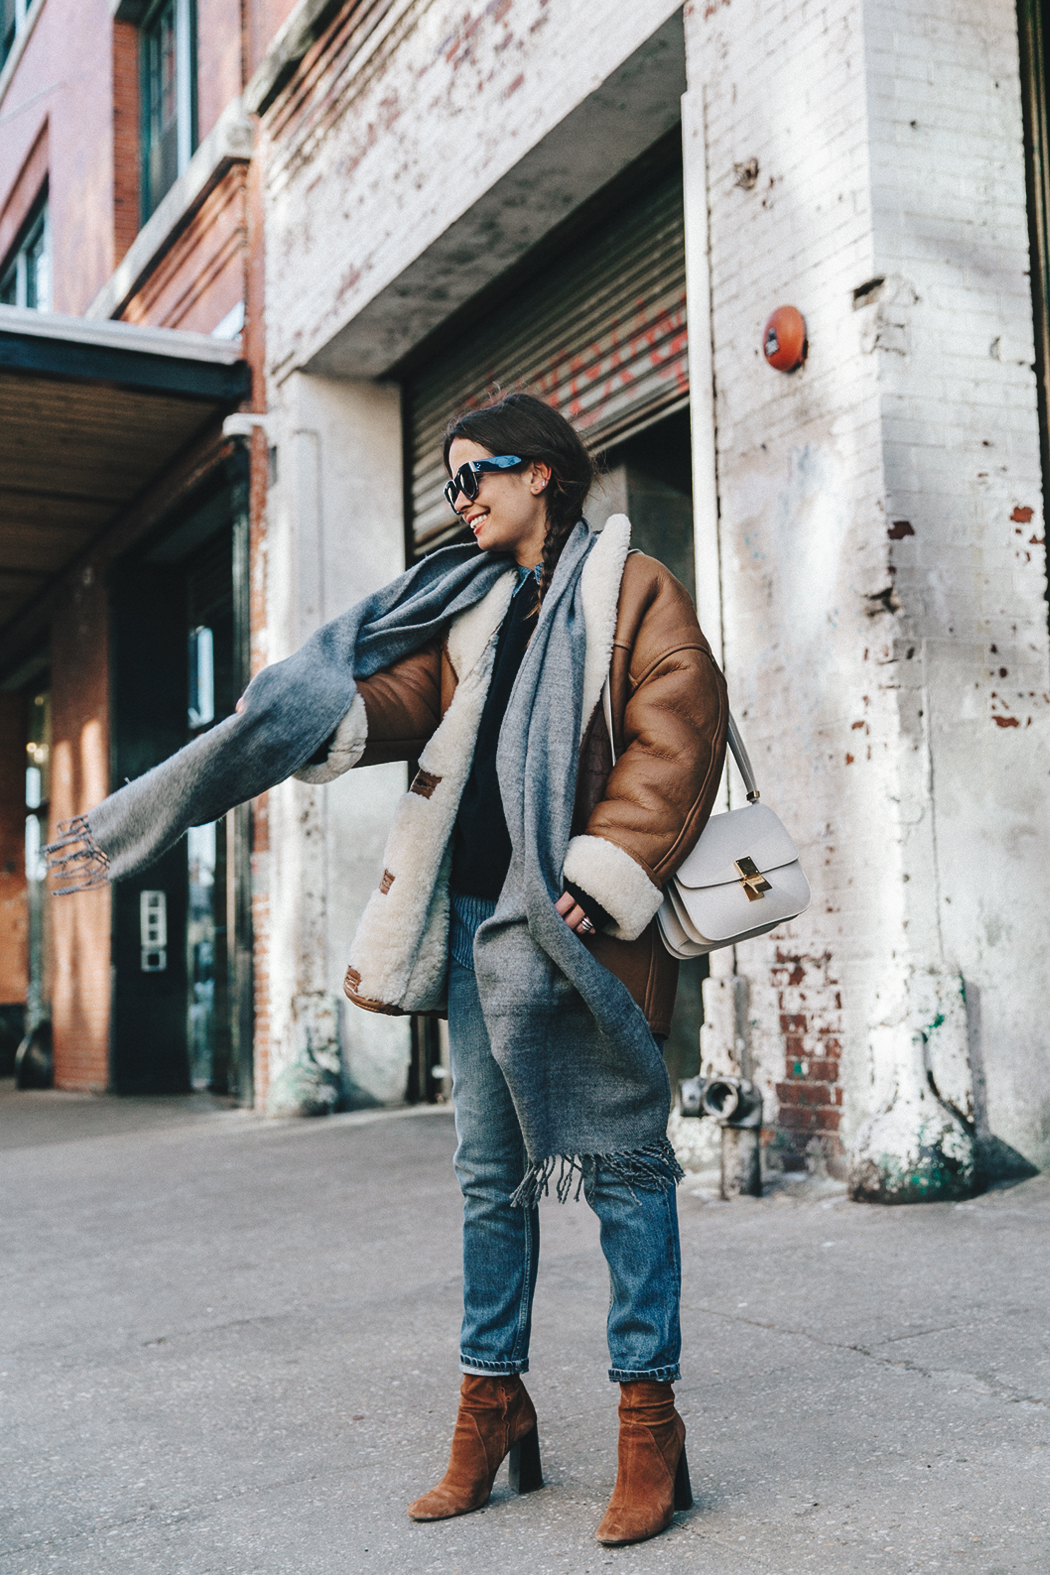 Denim_Lover-Topshop_Jeans-Vintage_Coat-Grey_Scarf-Brown_Booties-Navy_Sweayer-Denim_Shirt-Braids-NYFW-New_York_Fashion_Week-Street_style-Celine_Bag-Vestiaire_Collective-54